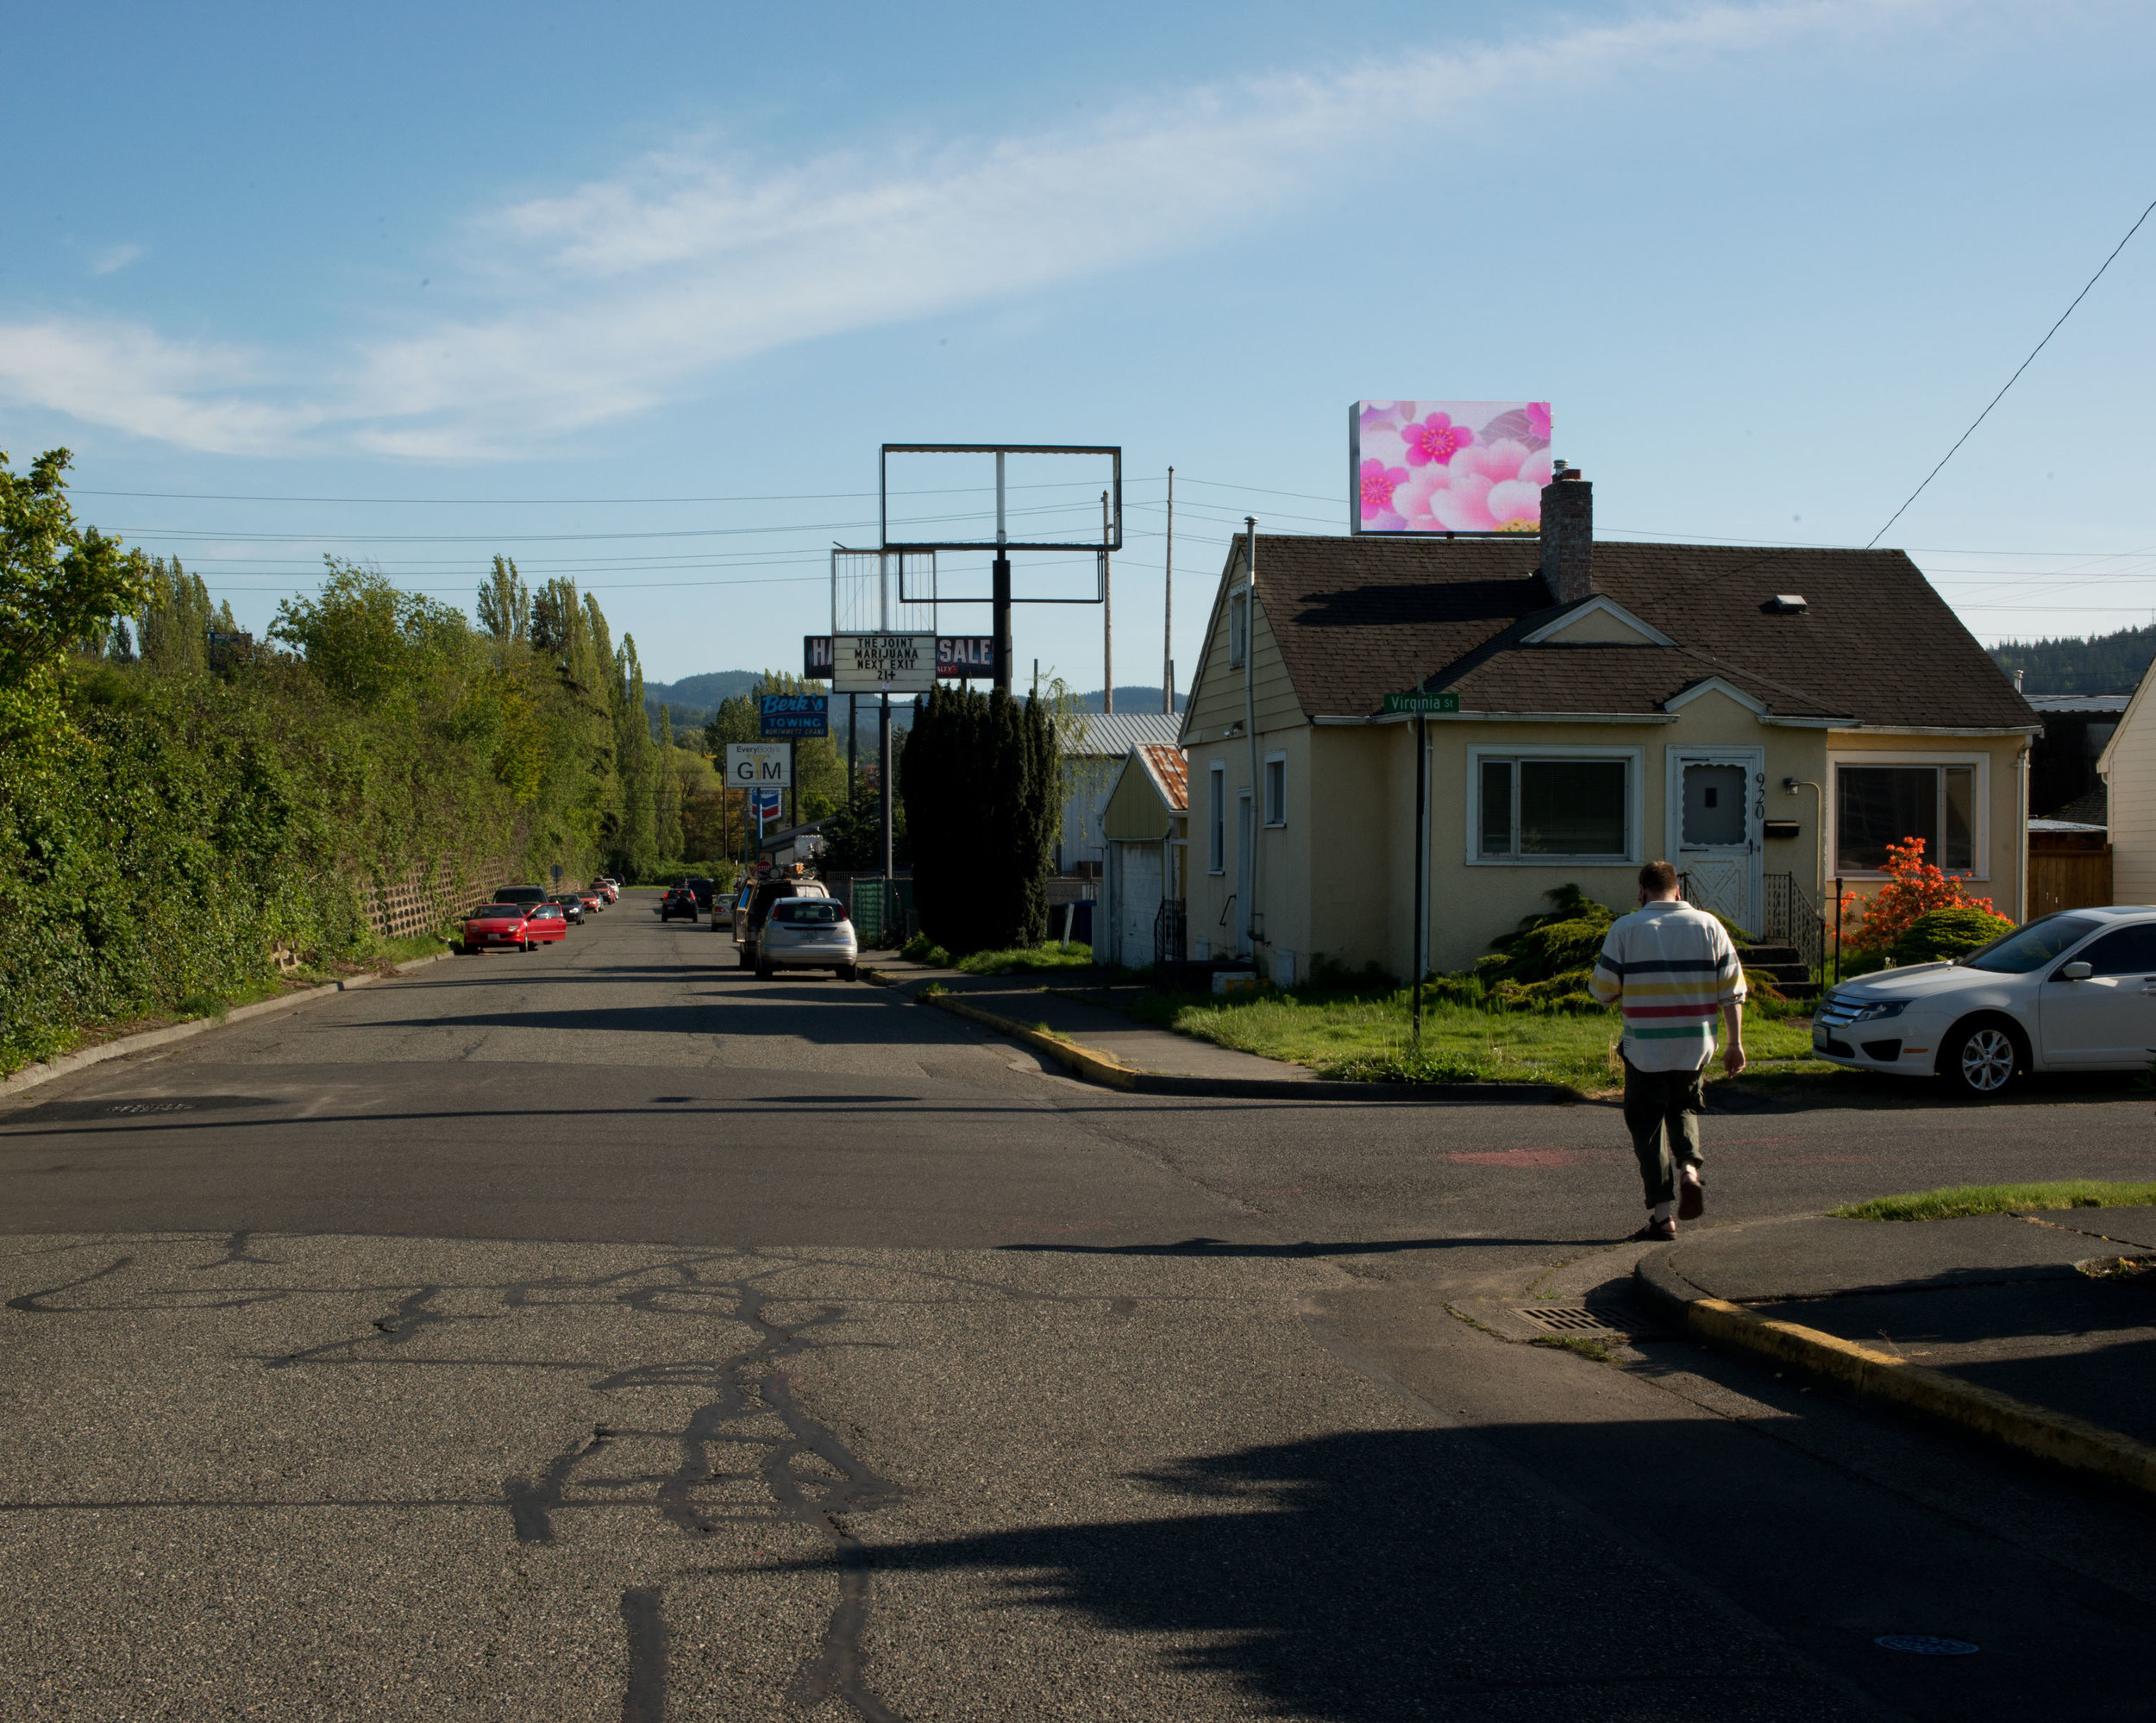 Untitled-(Neighborhood),-Bellingham,-WA.jpg